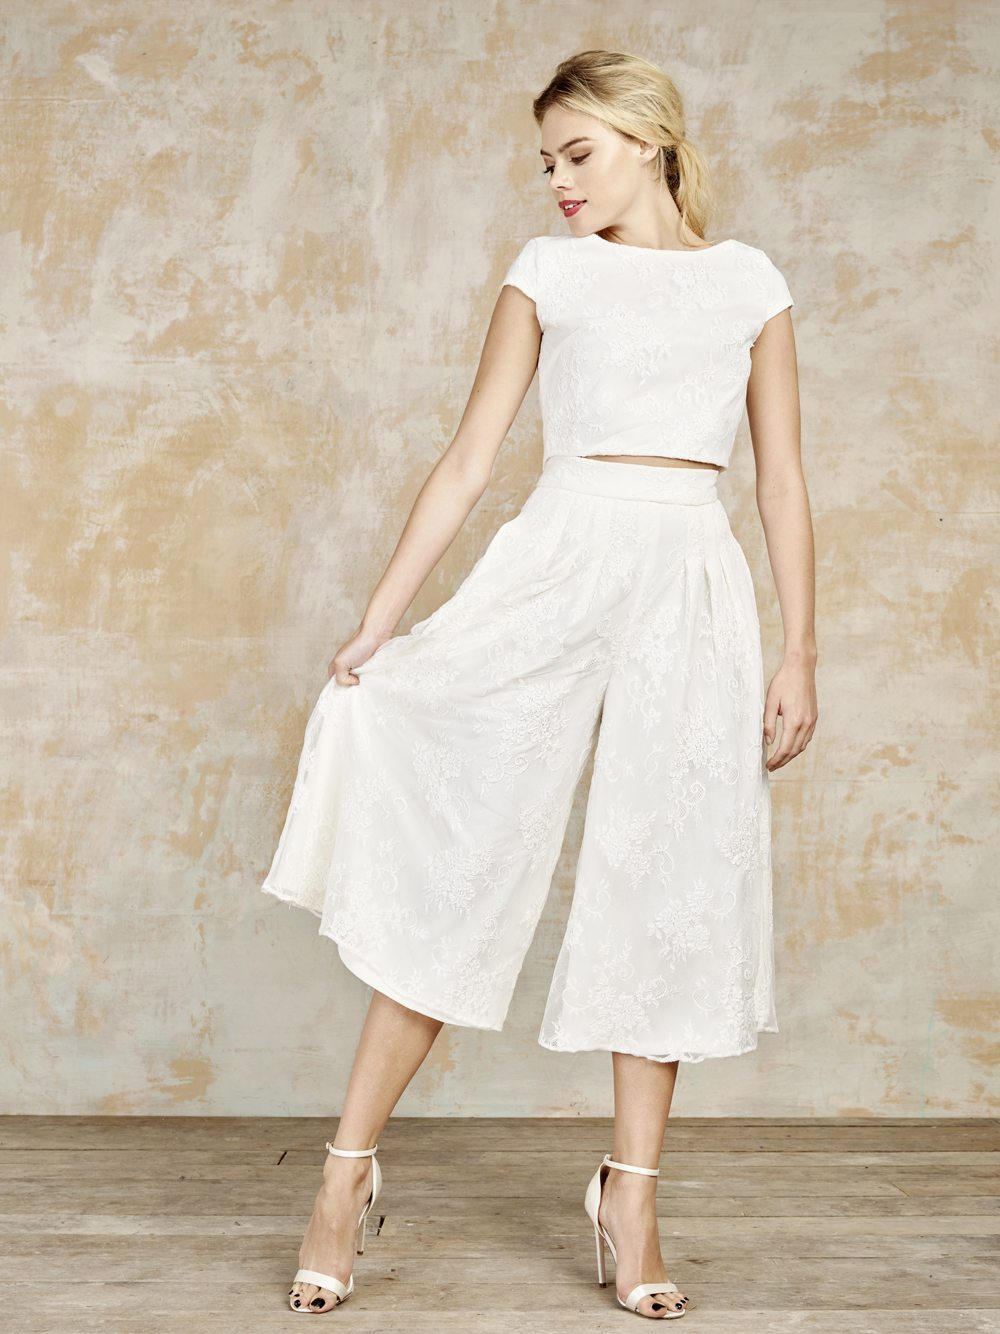 Drakeford culotte and top from House of Ollichon